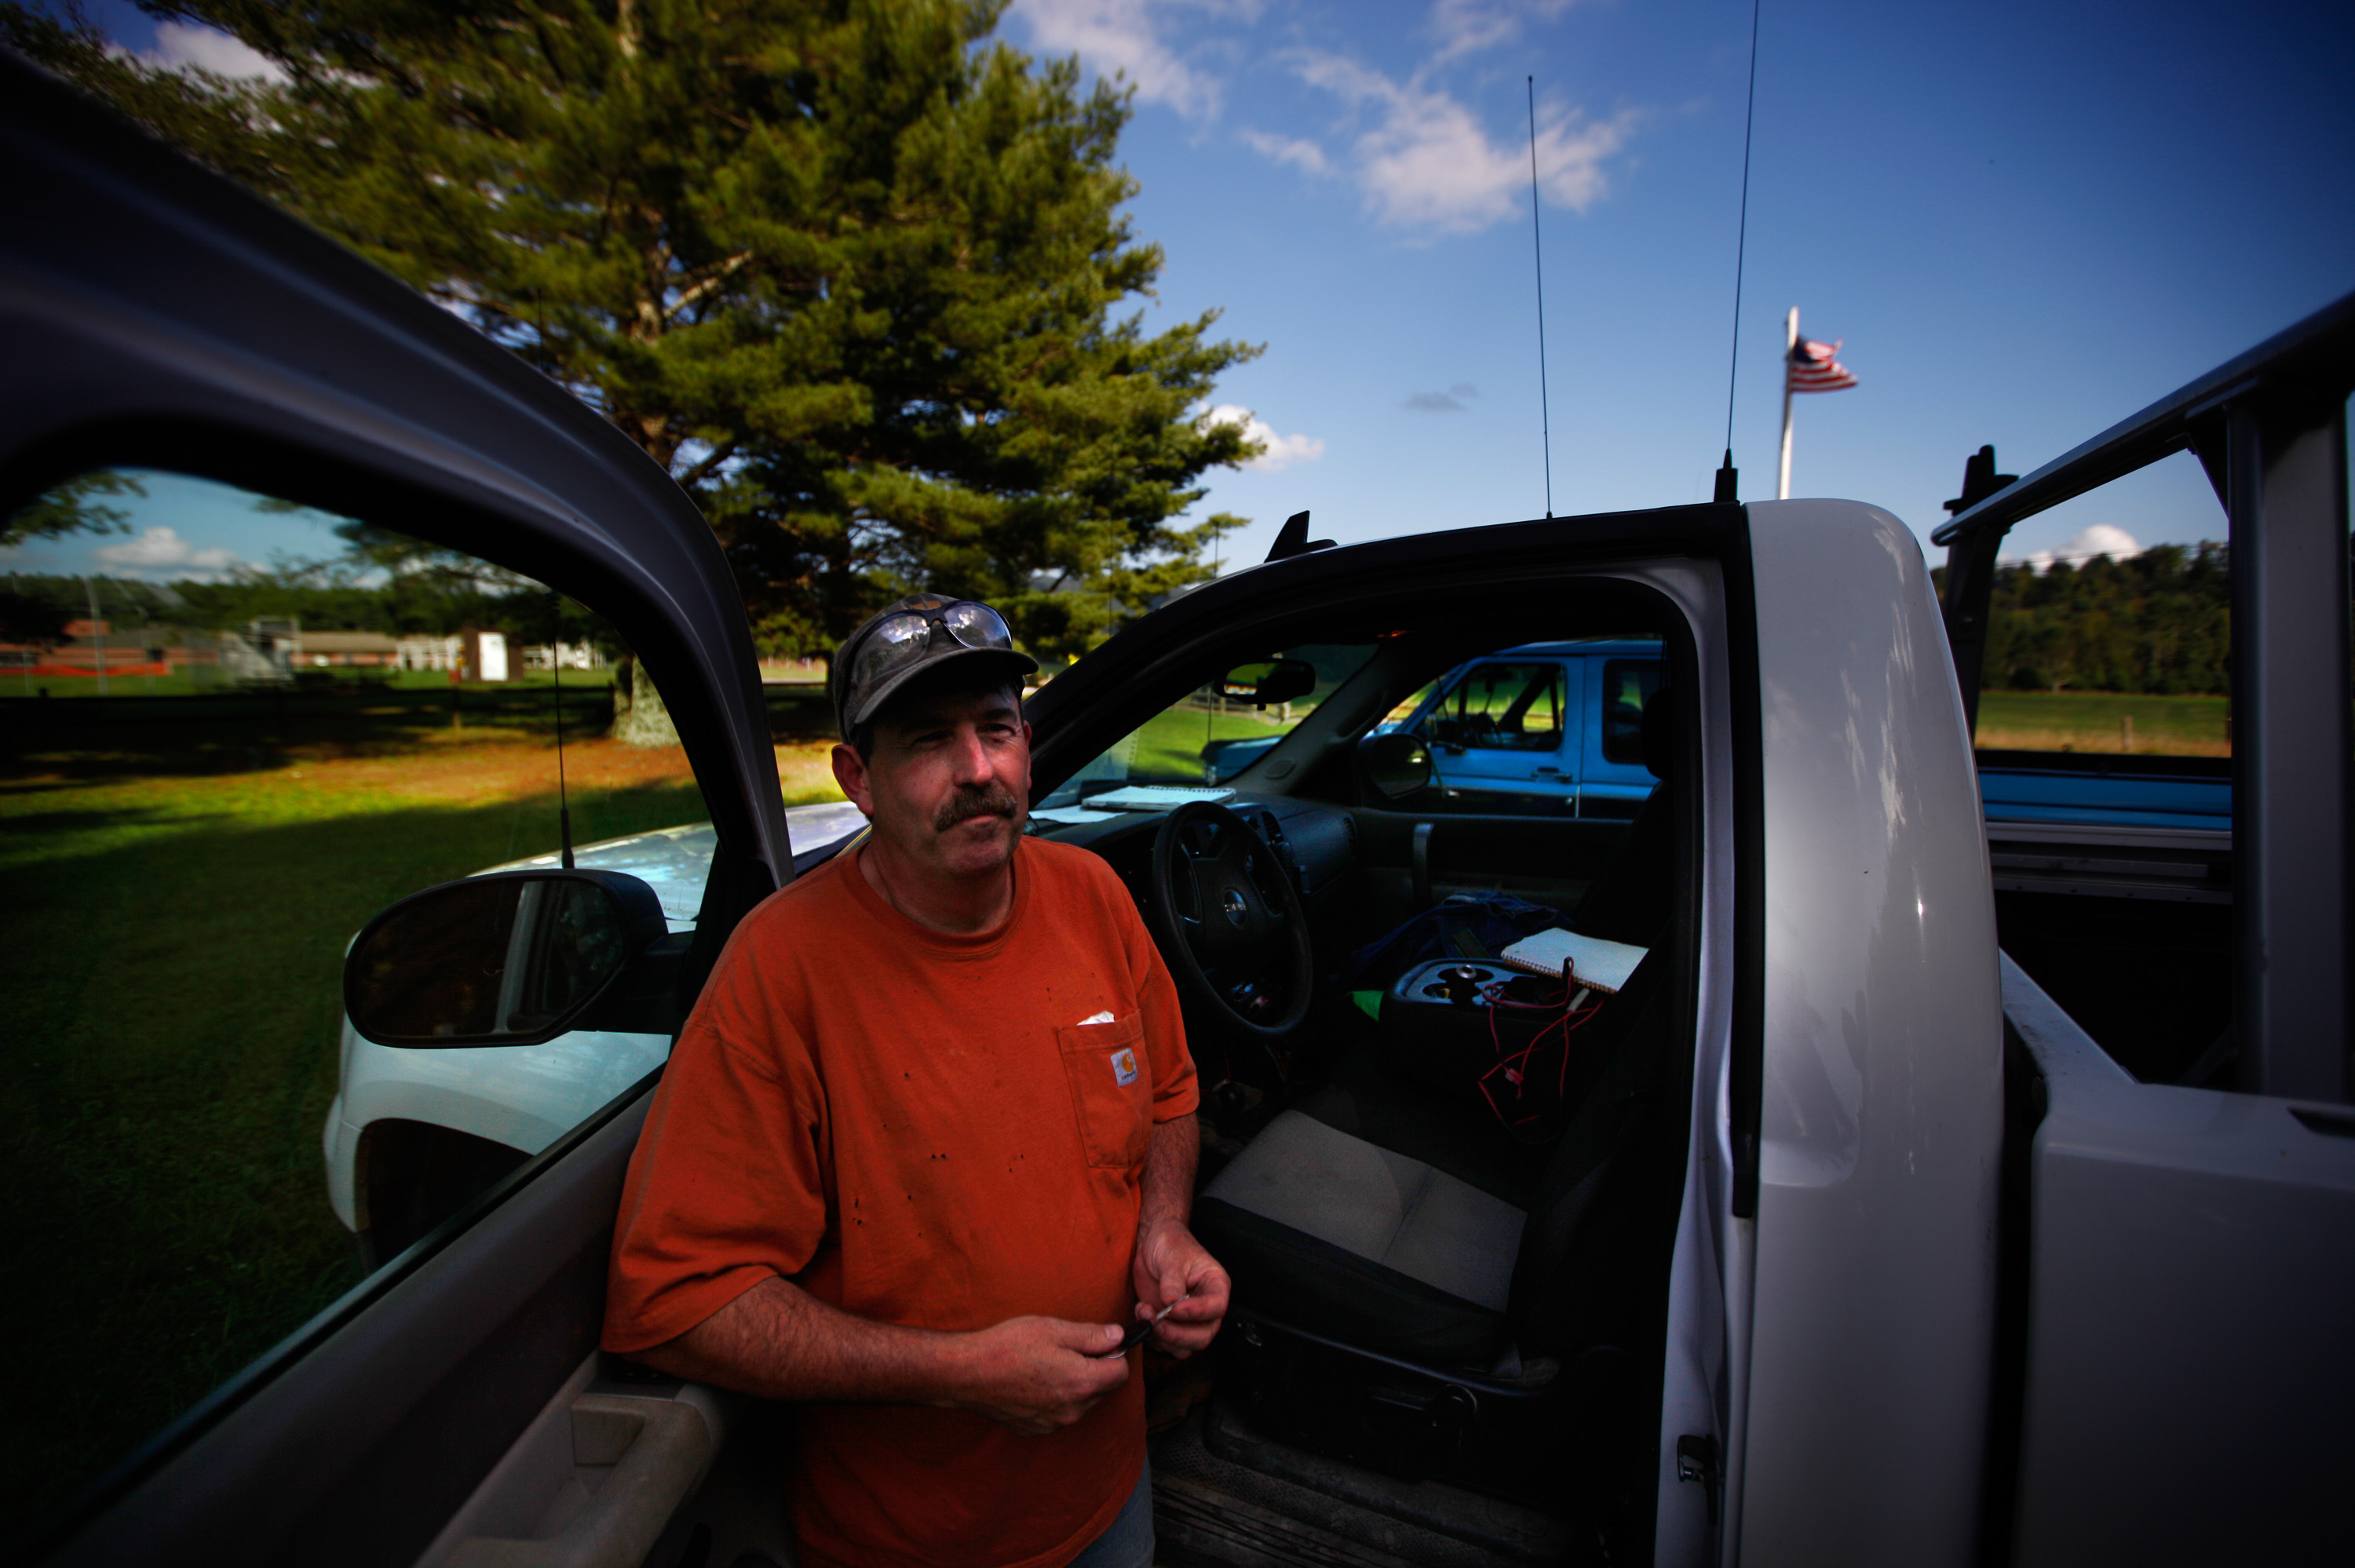 Pat Schaffner stands outside the Green Bank Public Library. He and some other area residents stay in touch by ham radio.